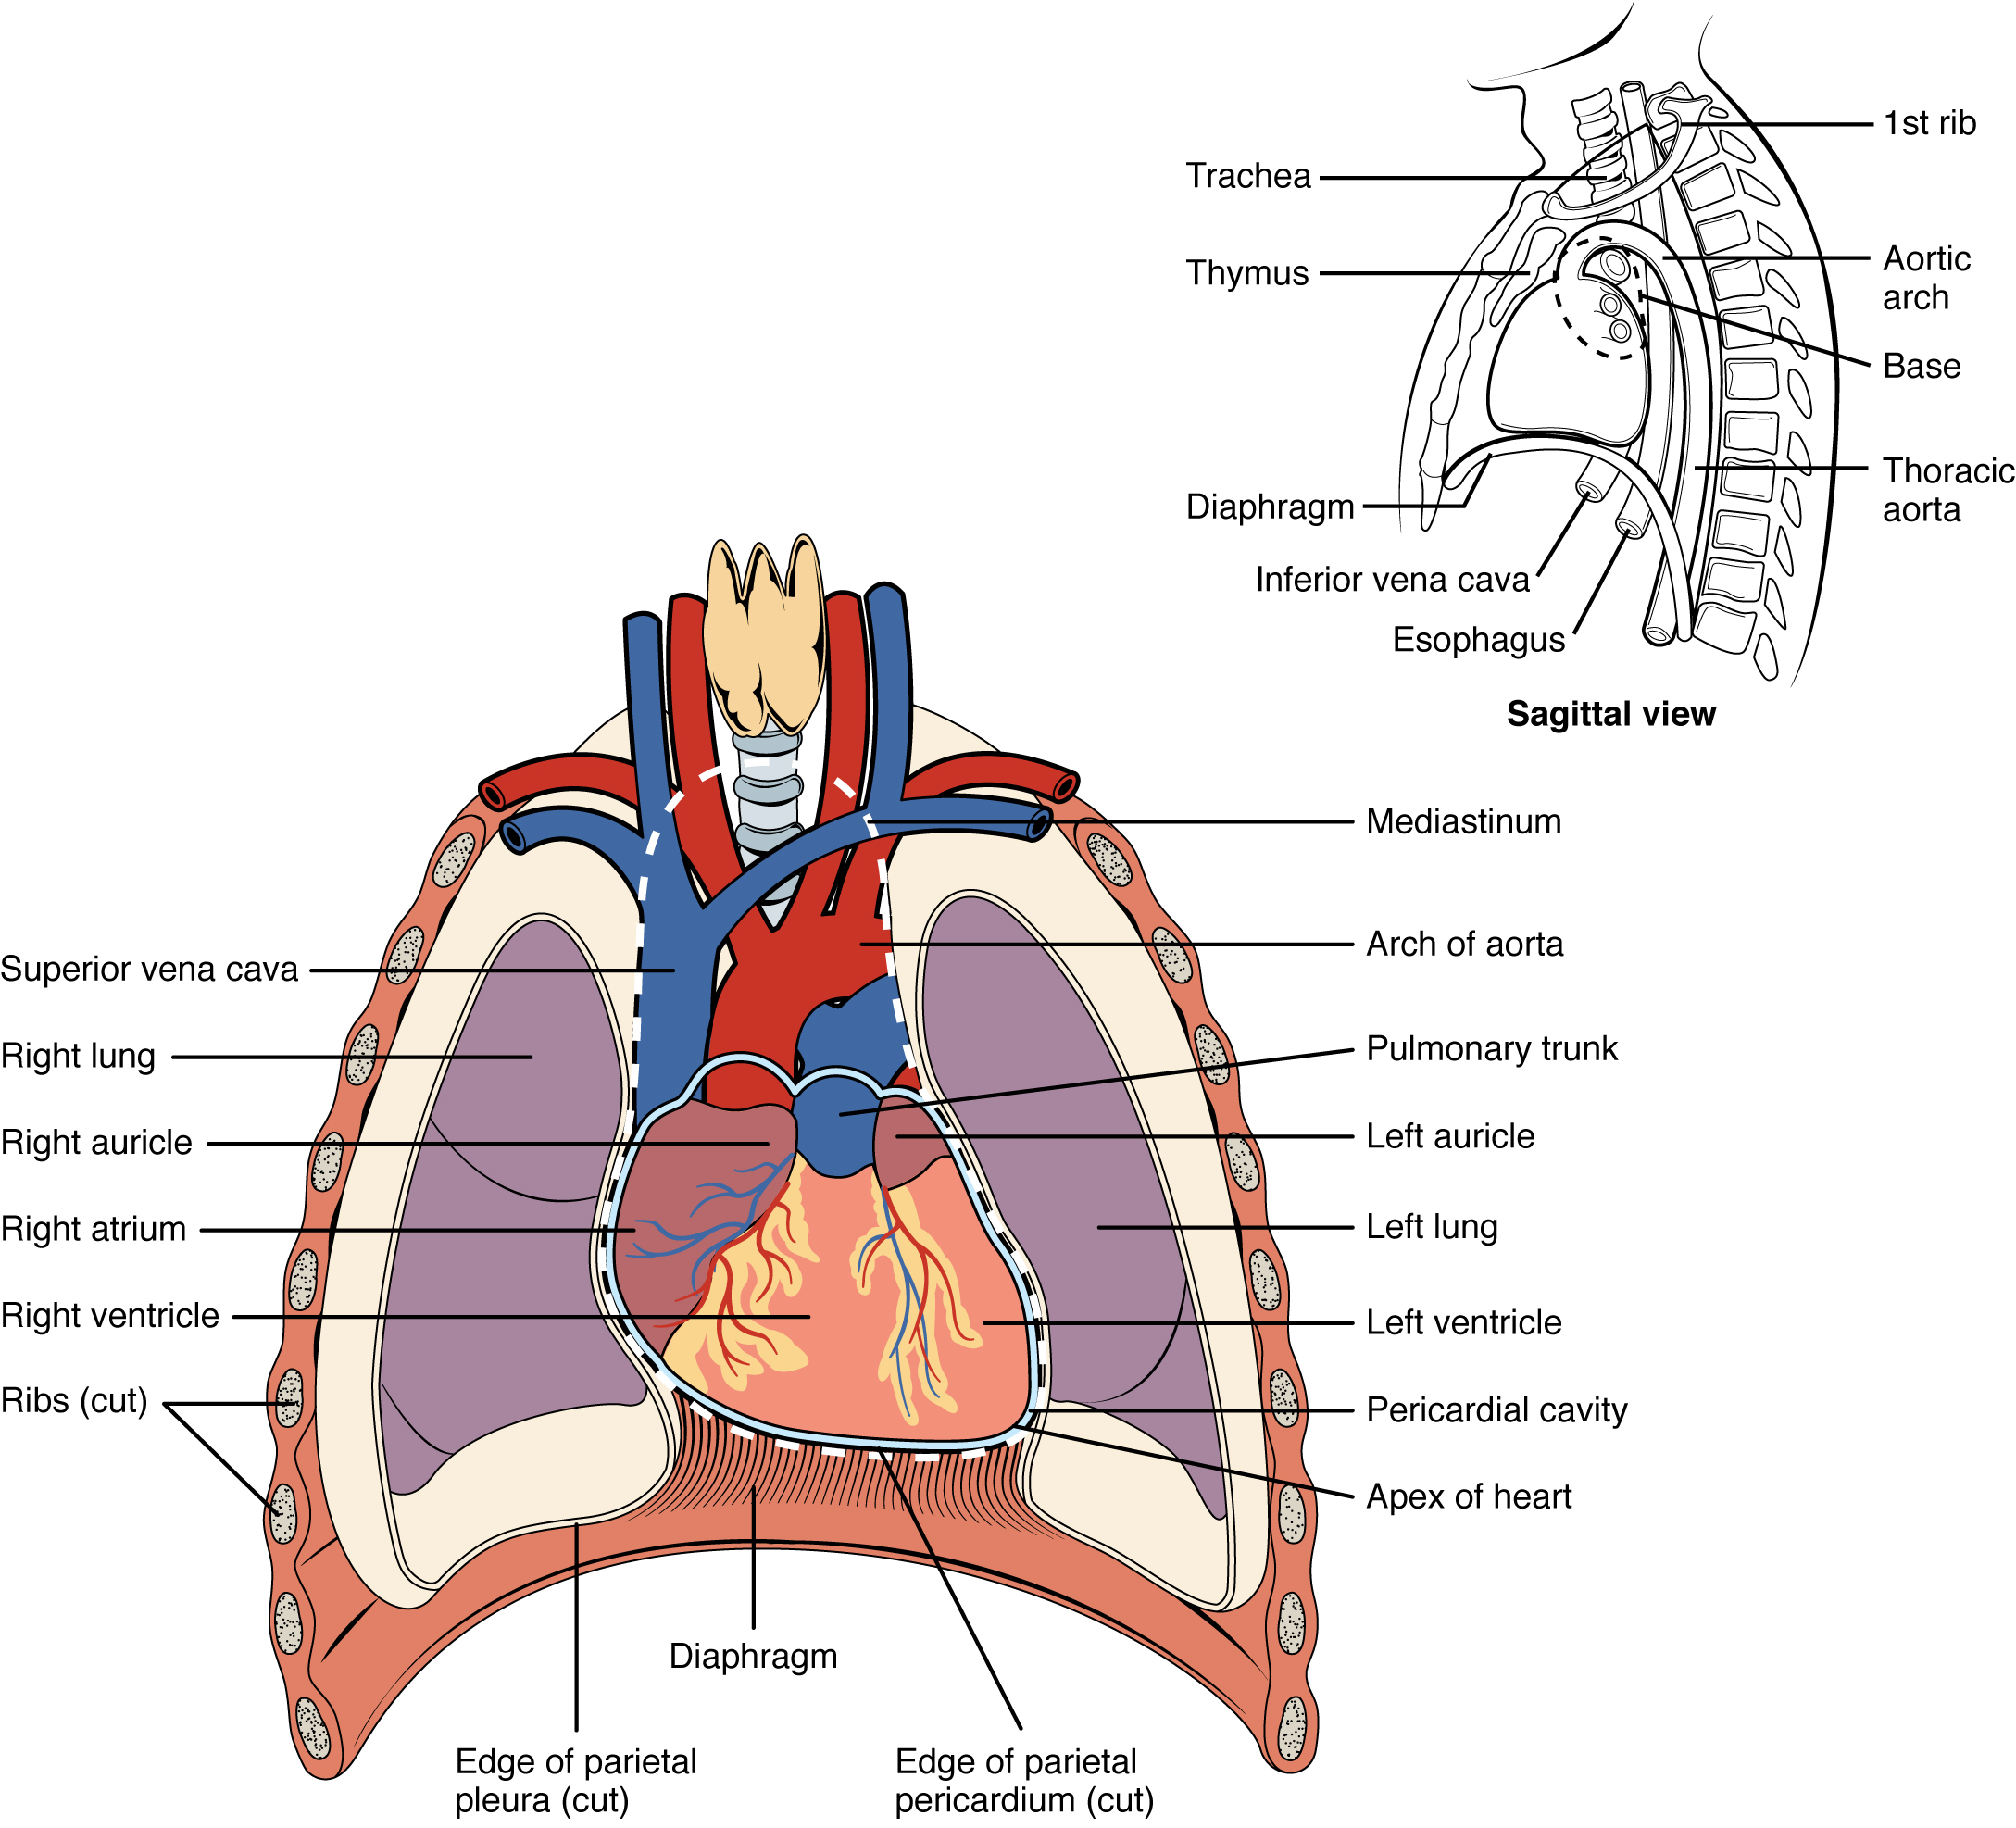 This diagram shows the location of the heart in the thorax.